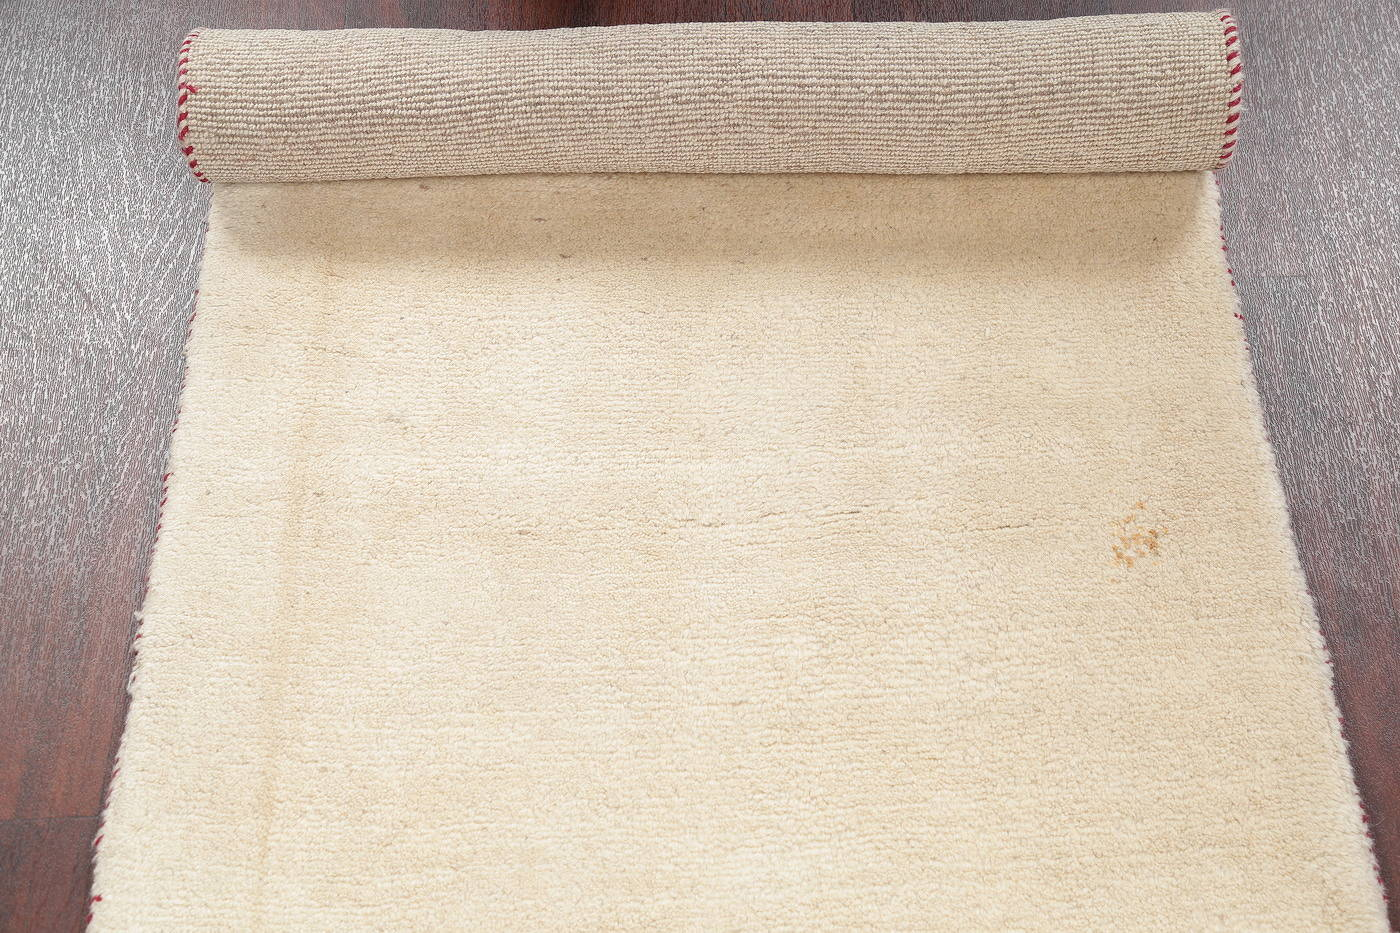 Hand-Knotted Solid Ivory Gabbeh Shiraz Persian Runner Rug 3x6 image 9